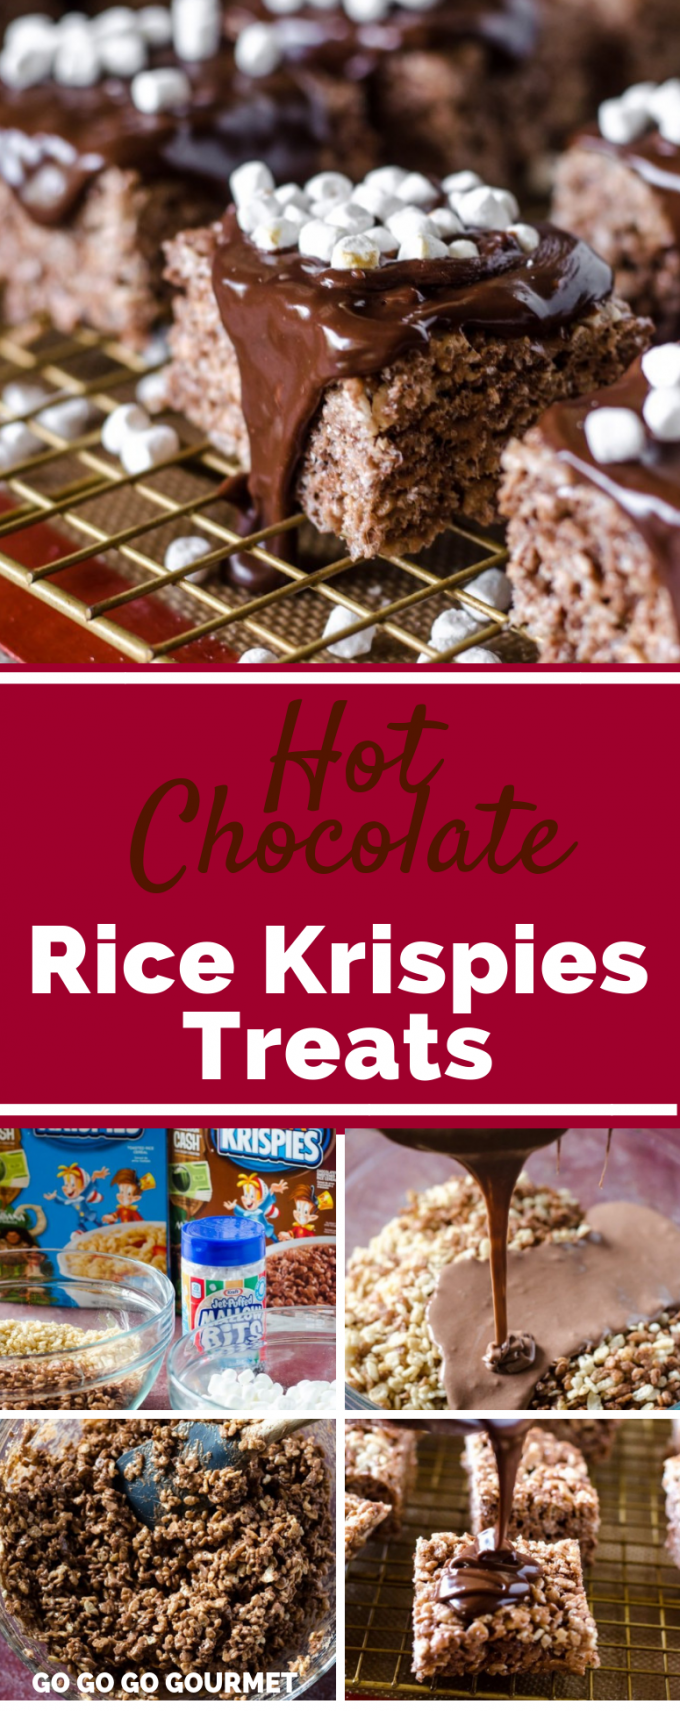 Forget the candy canes, these Hot Chocolate Rice Krispie Treats are a fun and easy no bake treat for the holidays! This recipe doesn't use peanut butter, but has plenty of melty chocolate! Top with mini marshmallows and this recipe will soon become one of your favorite desserts for Christmas! #GoGoGoGourmet #HotChocolateRiceKrispieTreats #ChristmasDesserts #RiceKrispieTreatRecipes #EasyDessertRecipes via @gogogogourmet